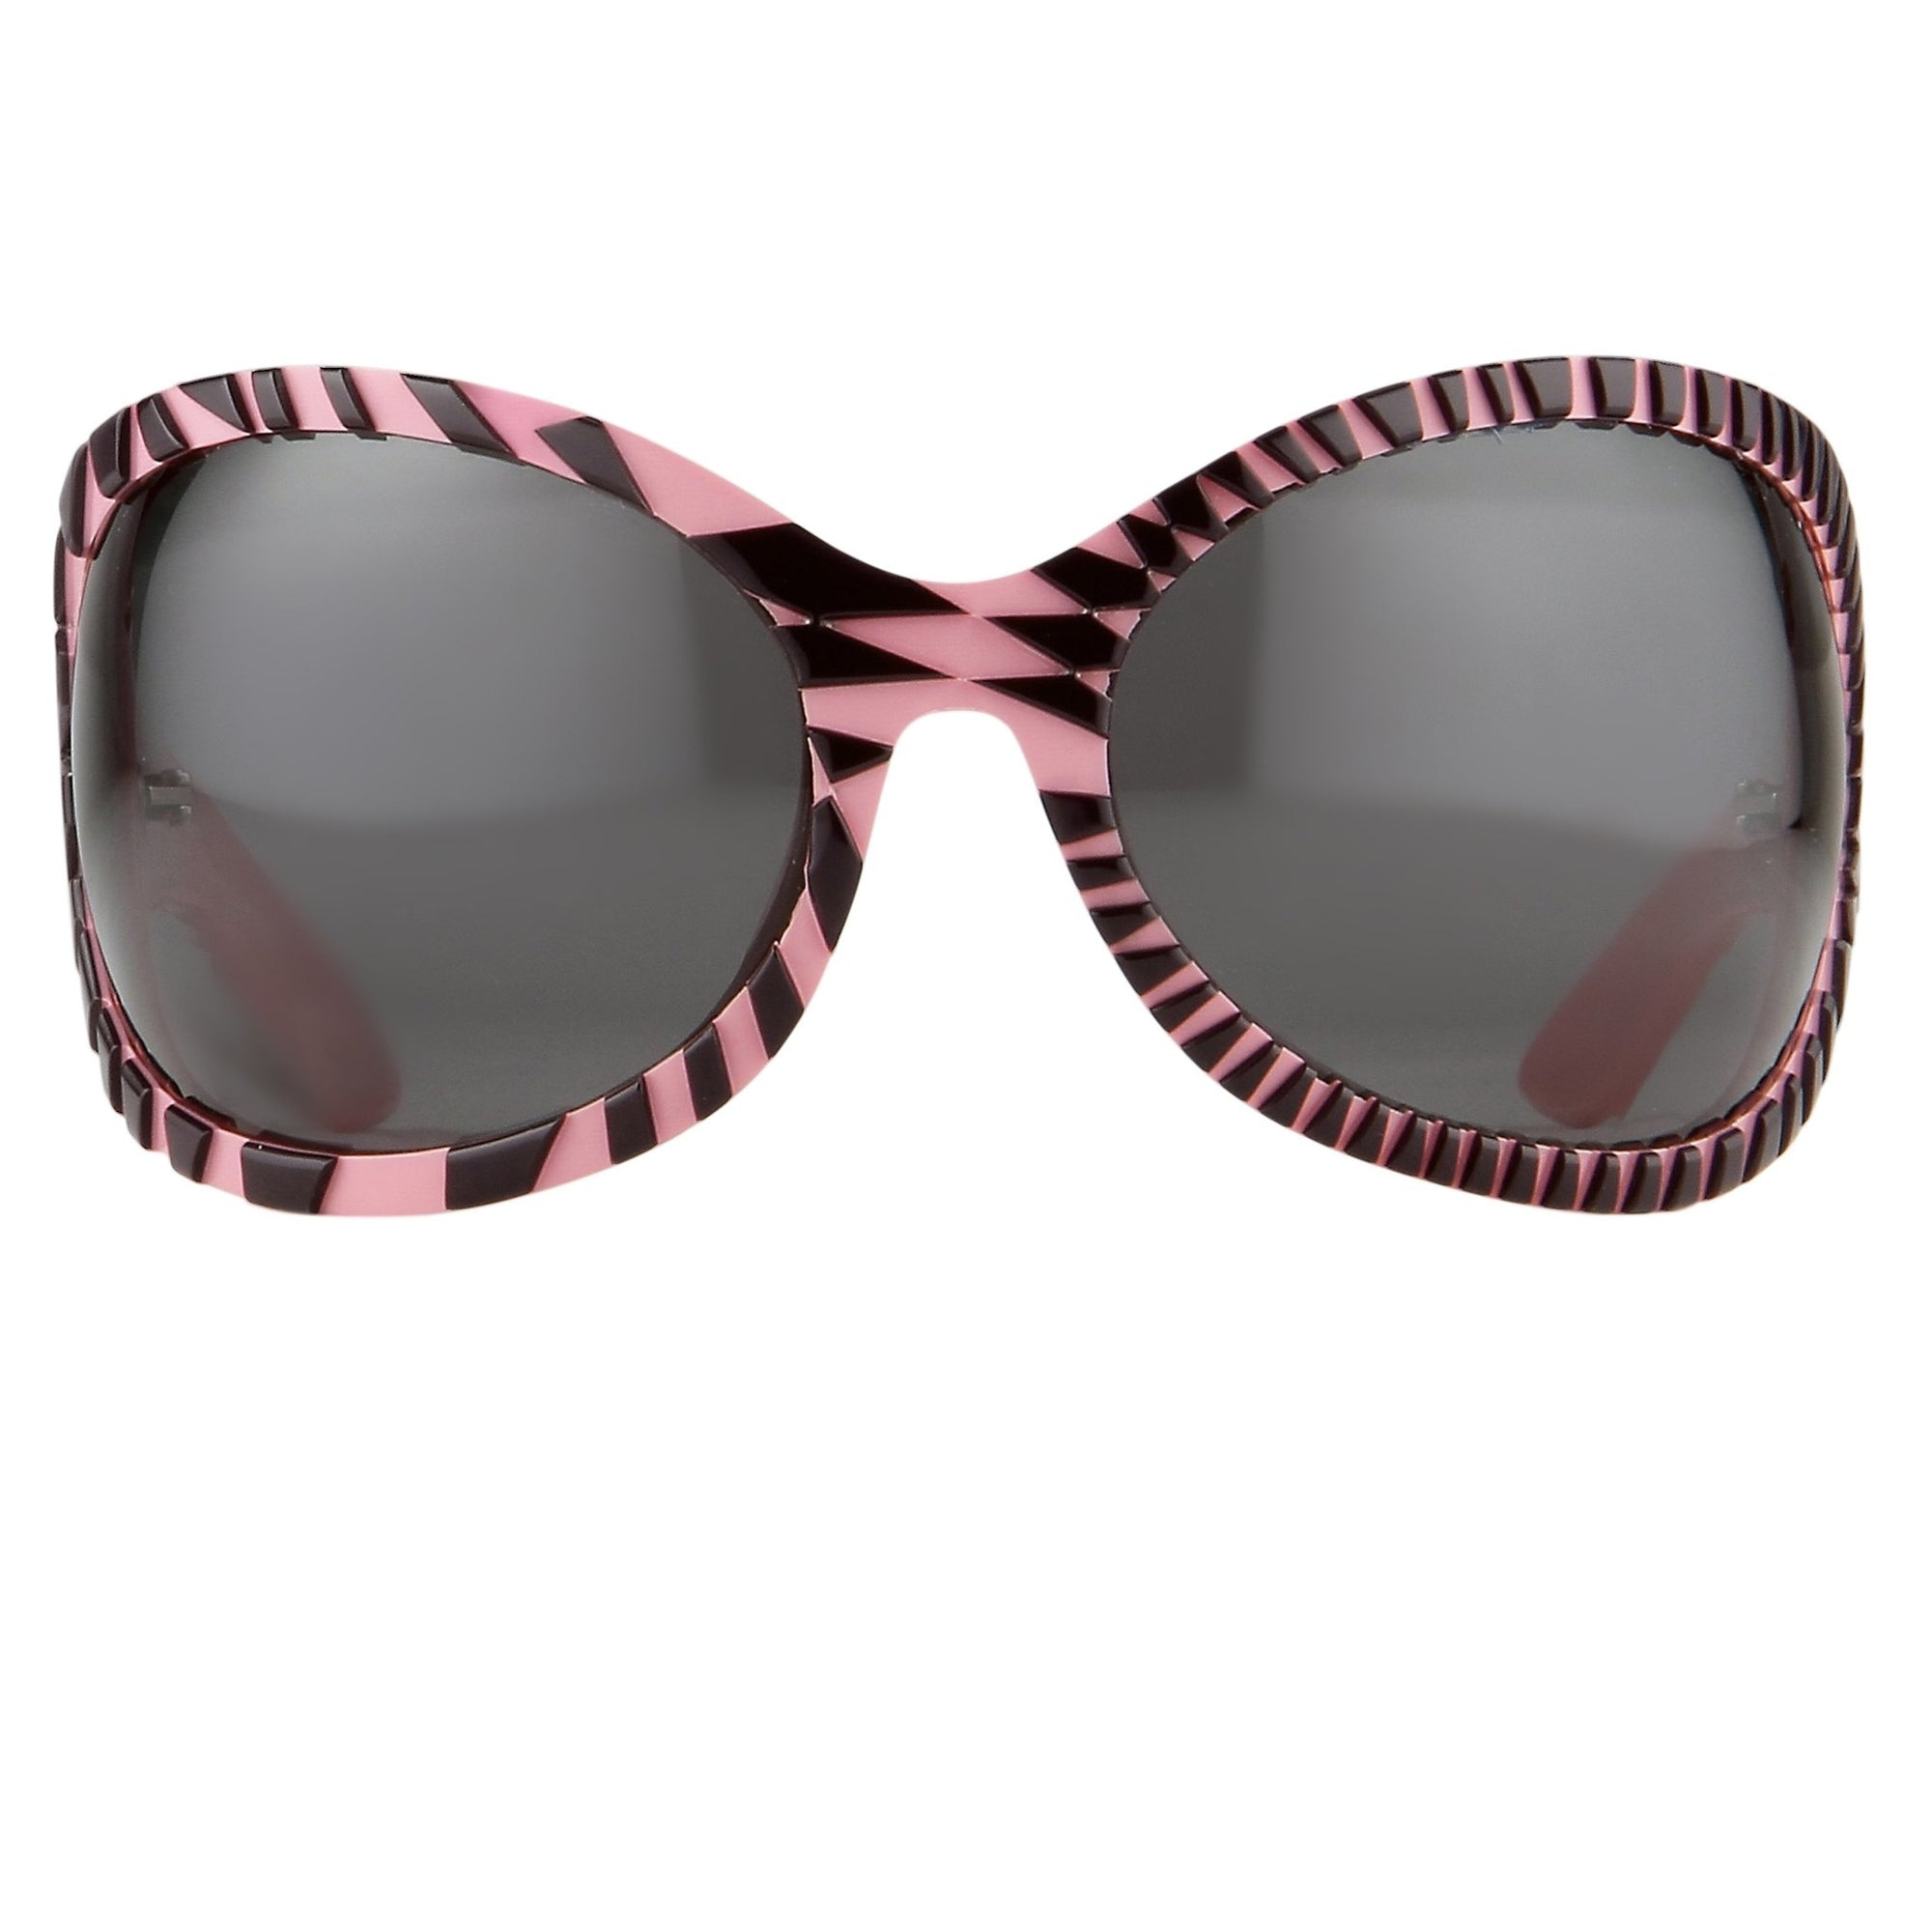 Jeremy Scott Sunglasses Wrap Around Black Pink Pattern With Grey Category 3 Lenses JSWRAPC3SUN - Watches & Crystals